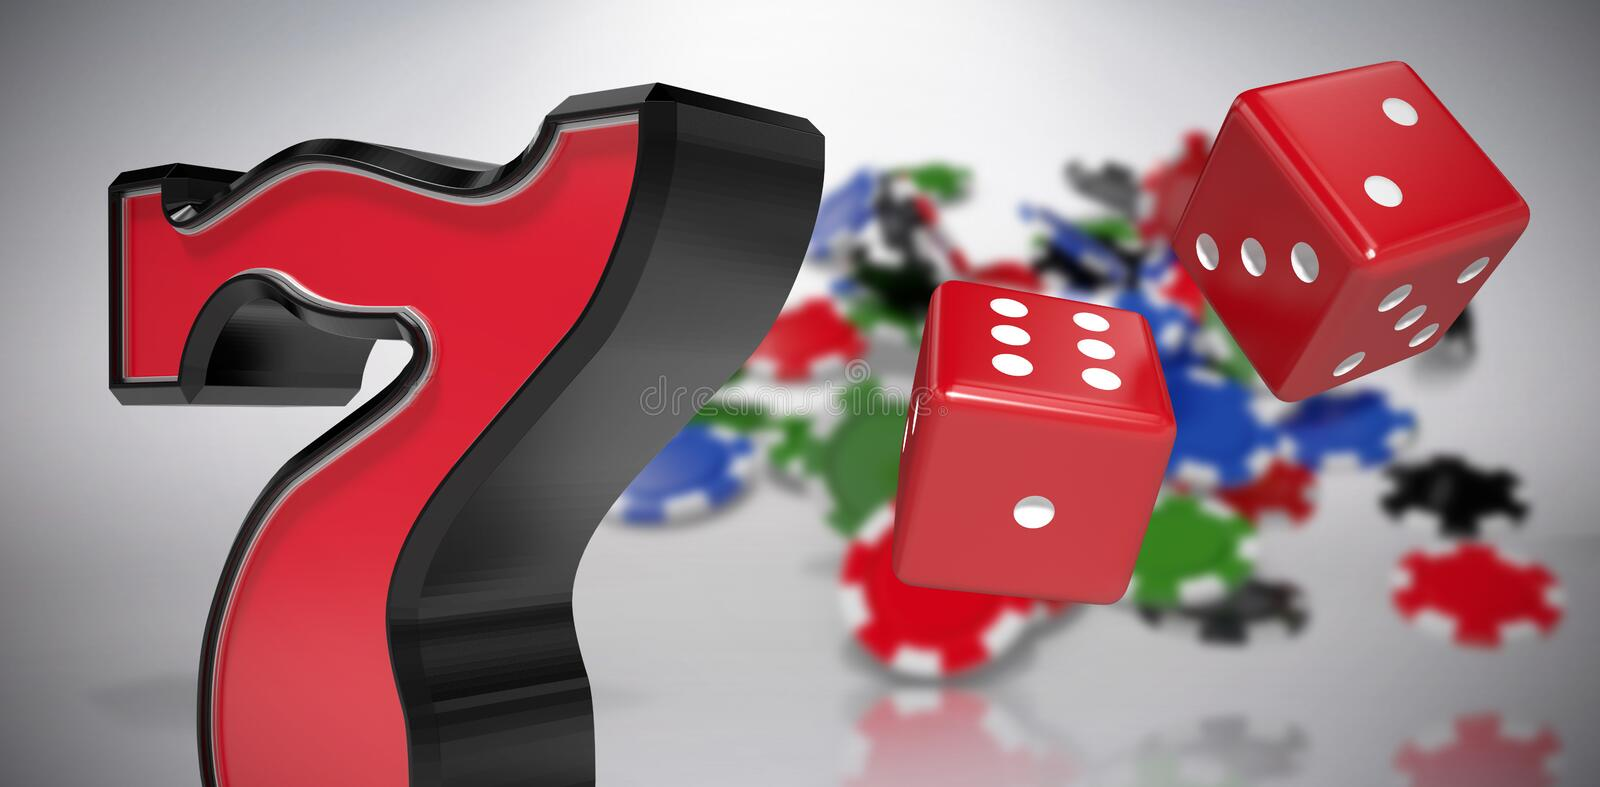 Composite image of composite 3d image of red dice. Composite 3D image of red dice against grey background vector illustration